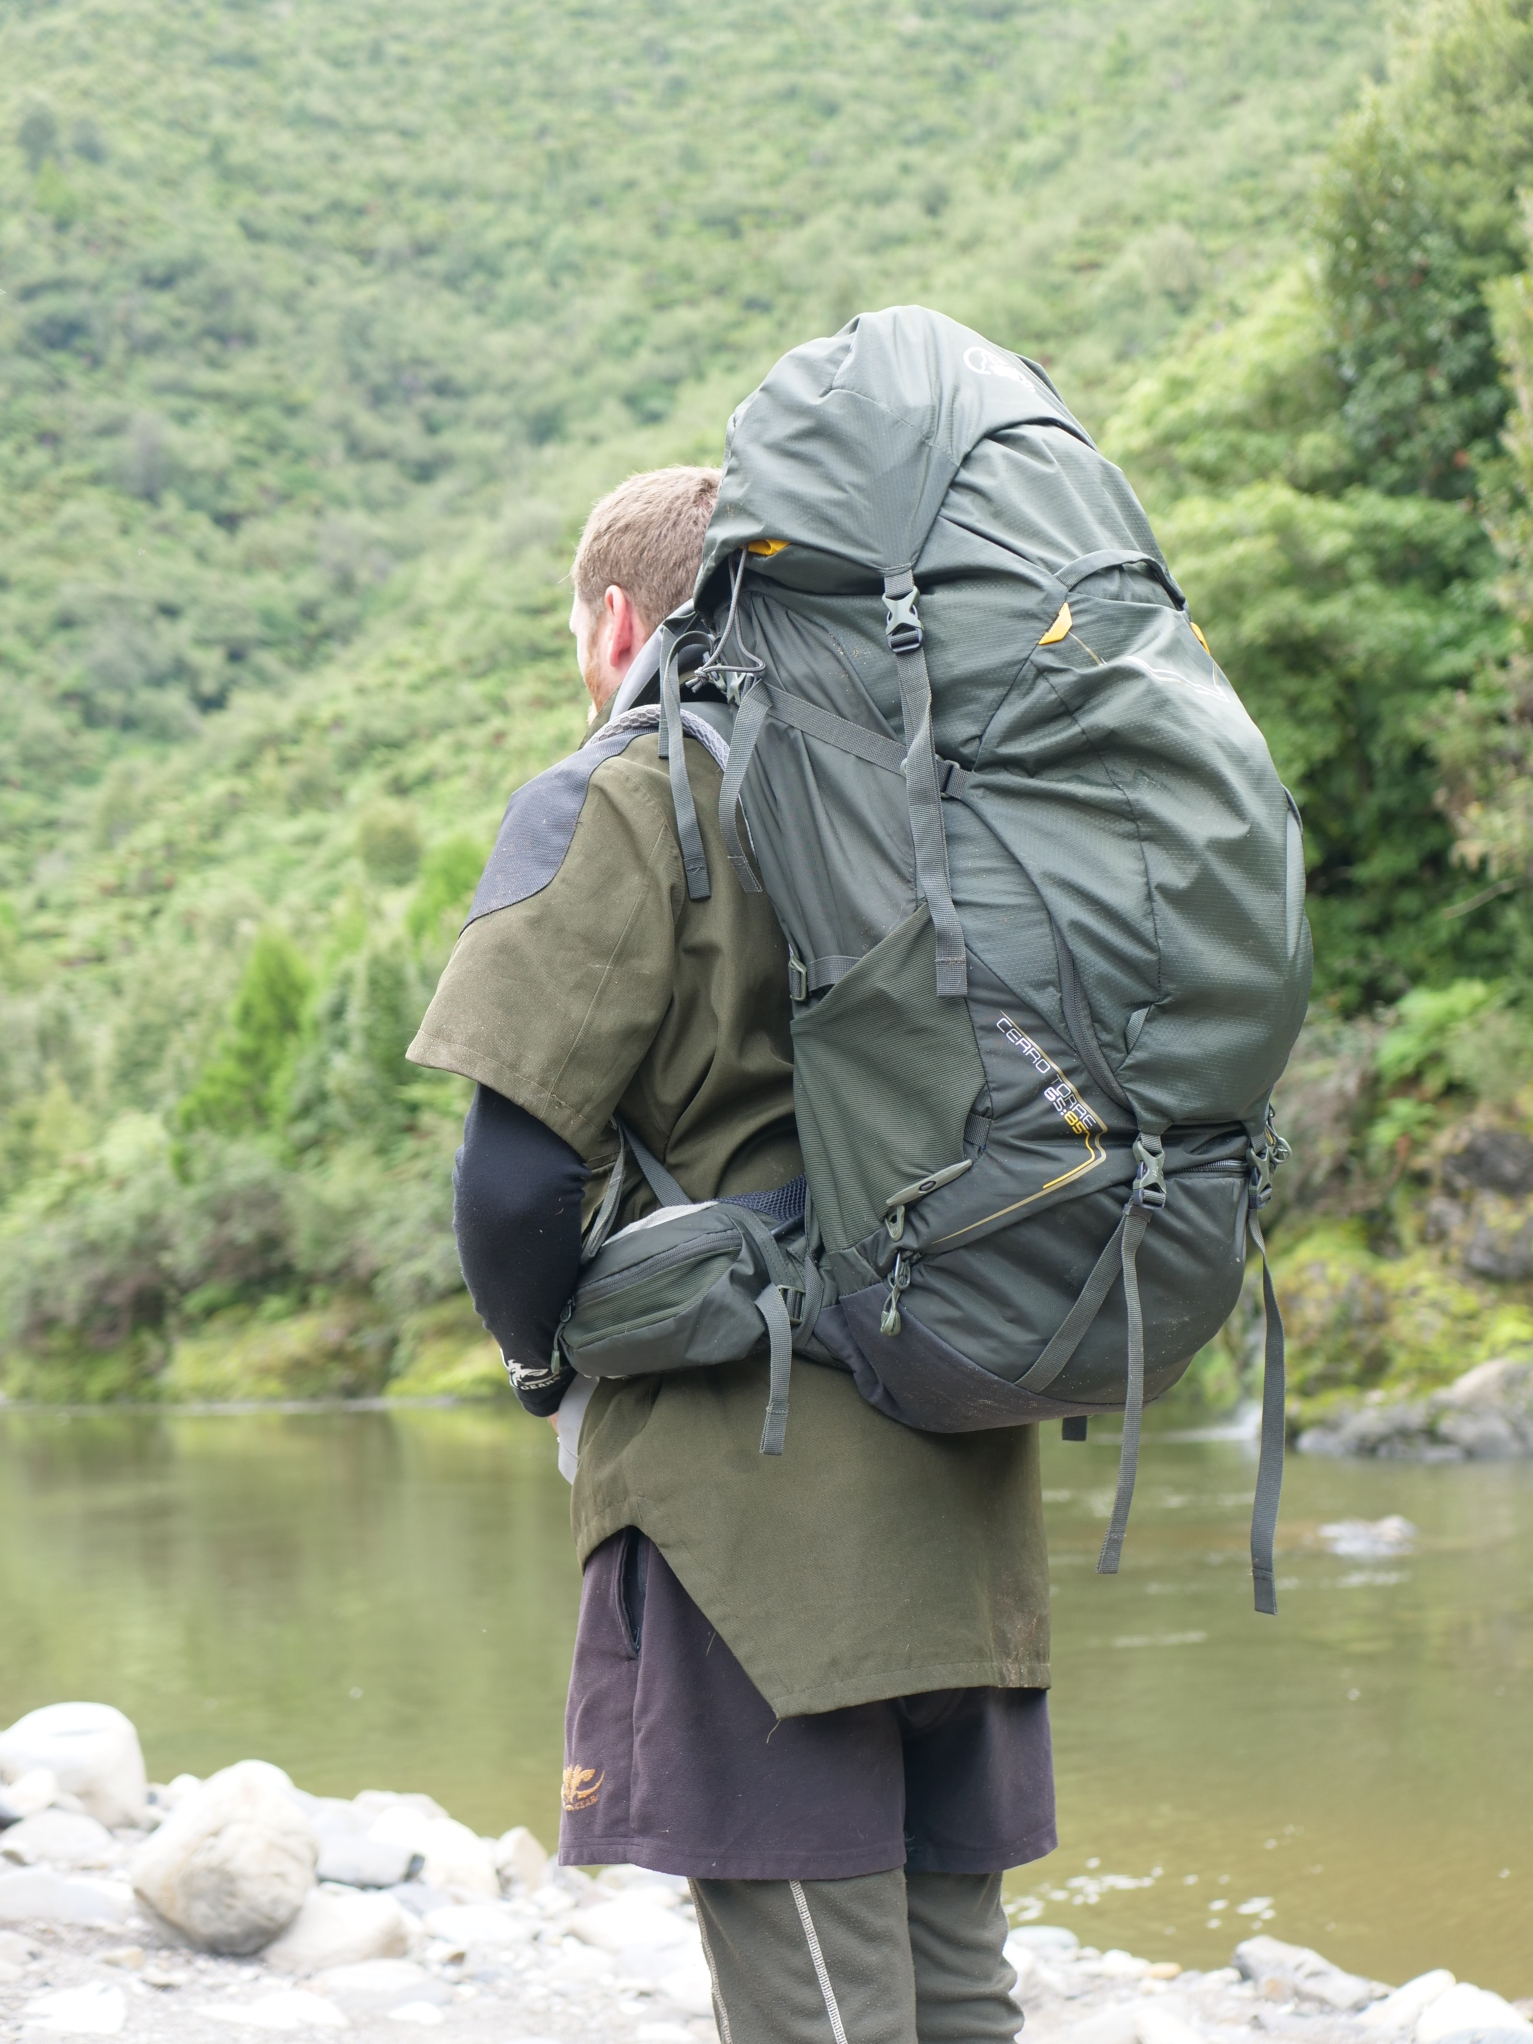 Game Gear Hunting apparel